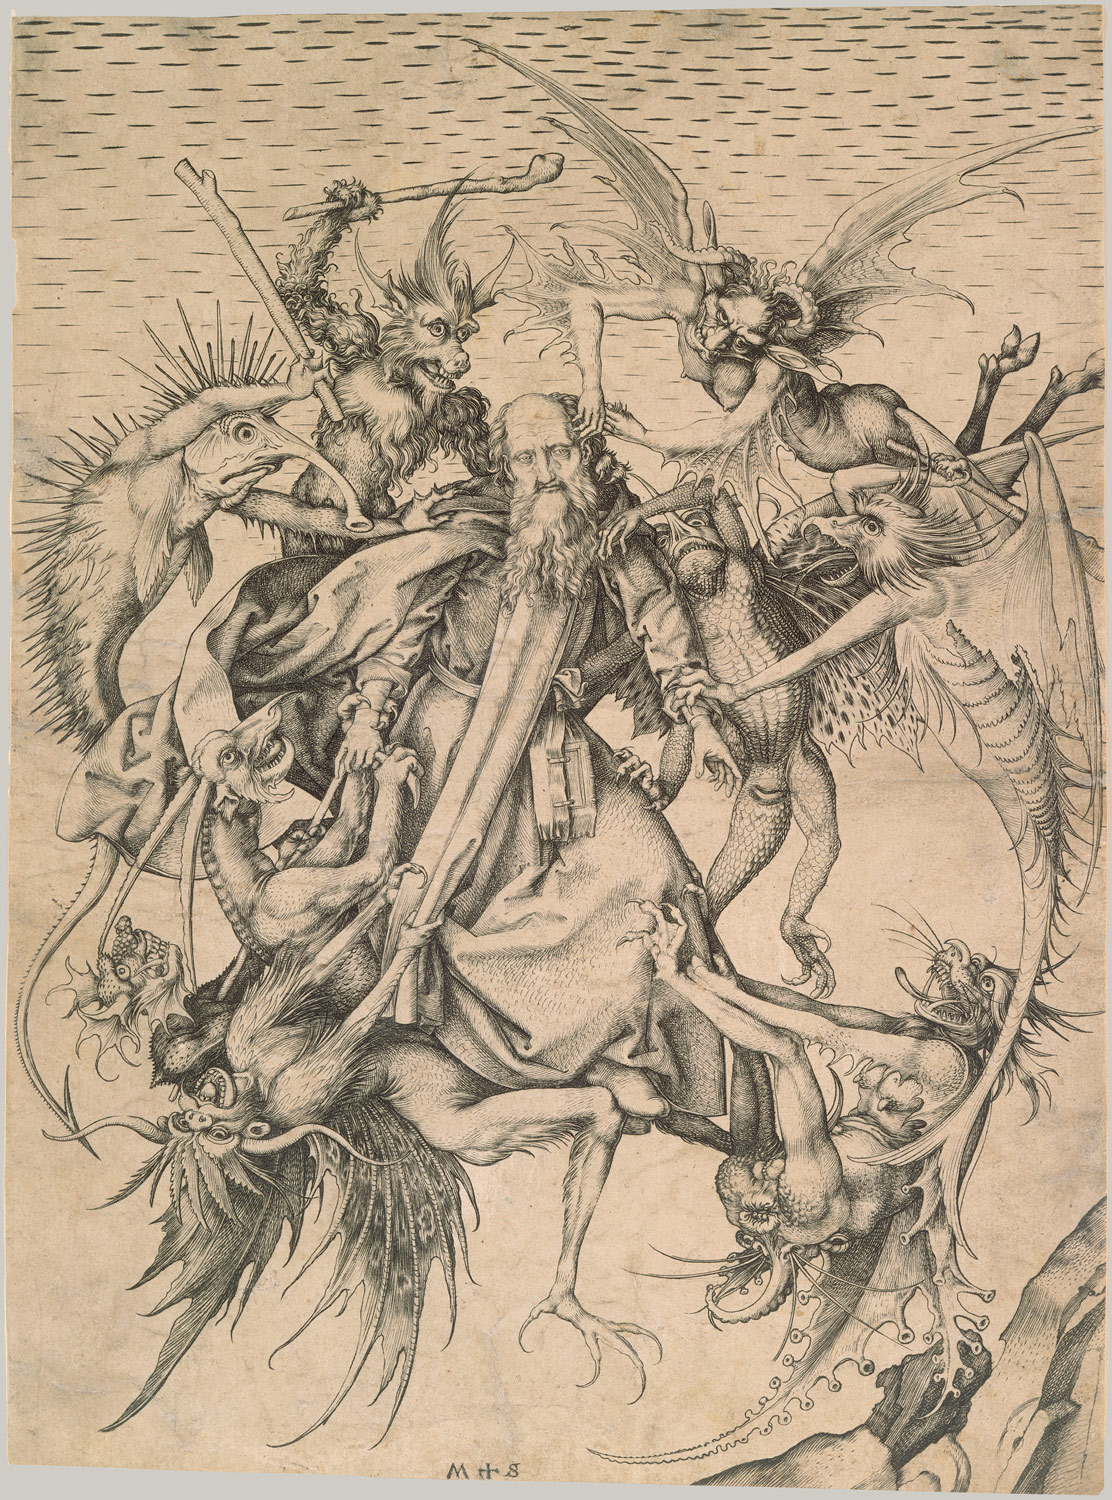 Saint anthony tormented by demons martin schongauer 2052 saint anthony tormented by demons biocorpaavc